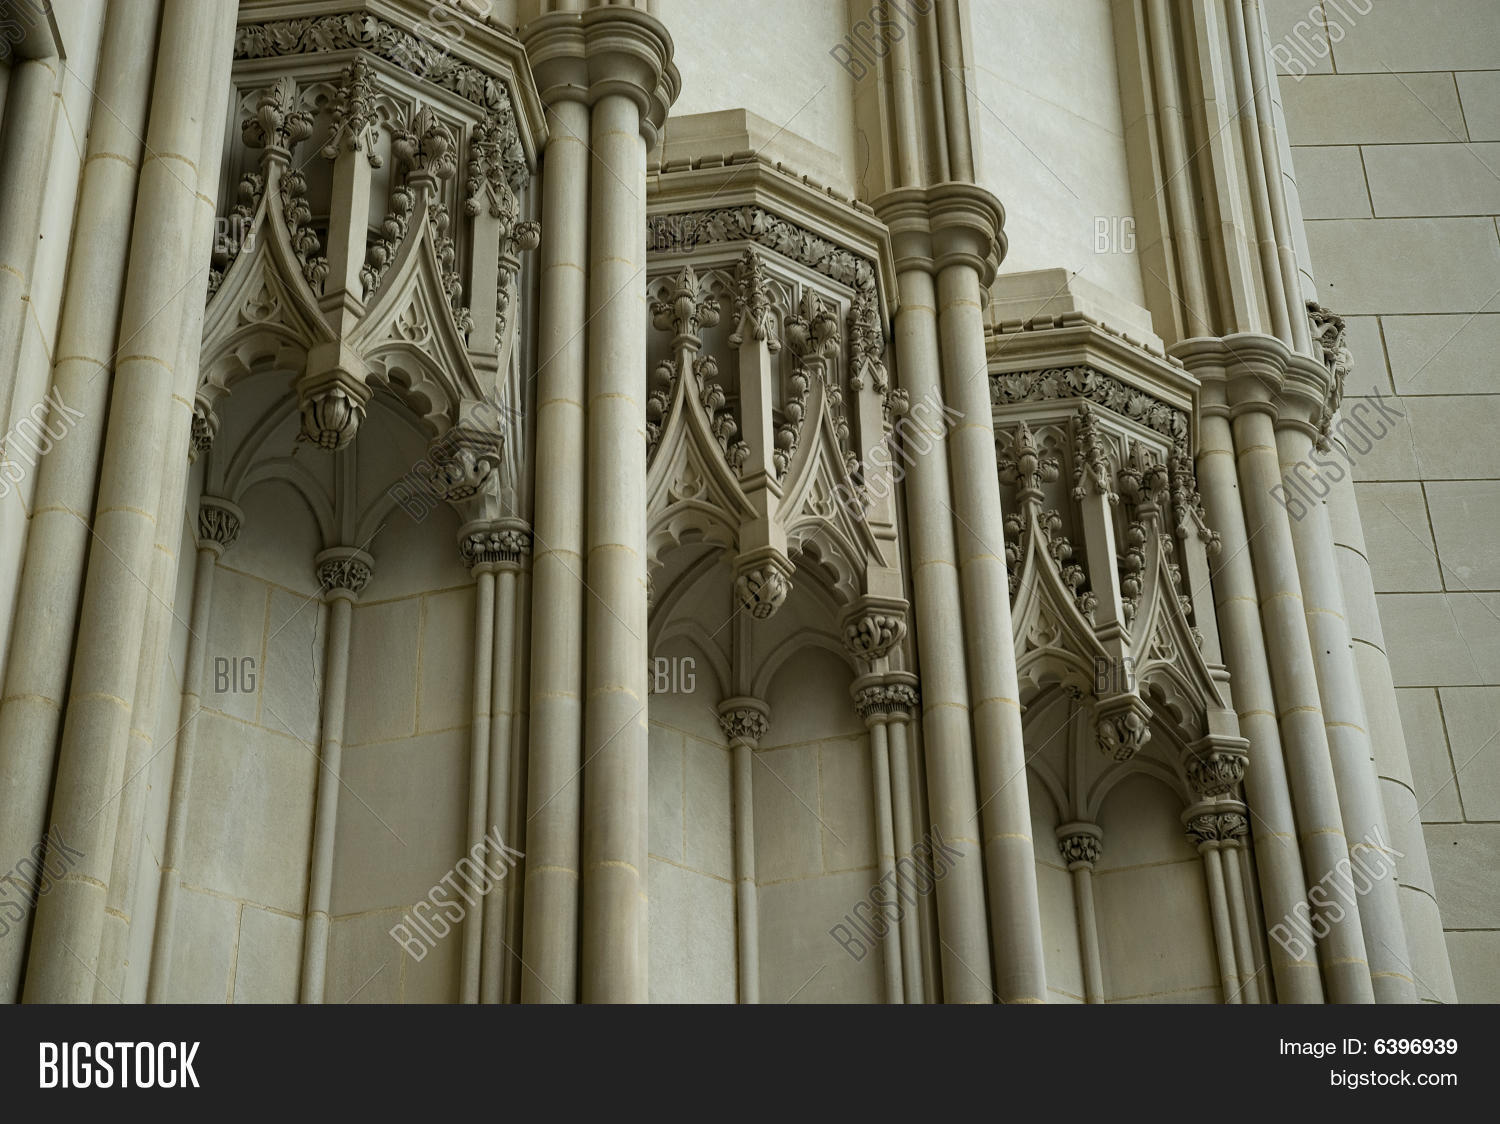 Gothic Architecture Image Photo Free Trial